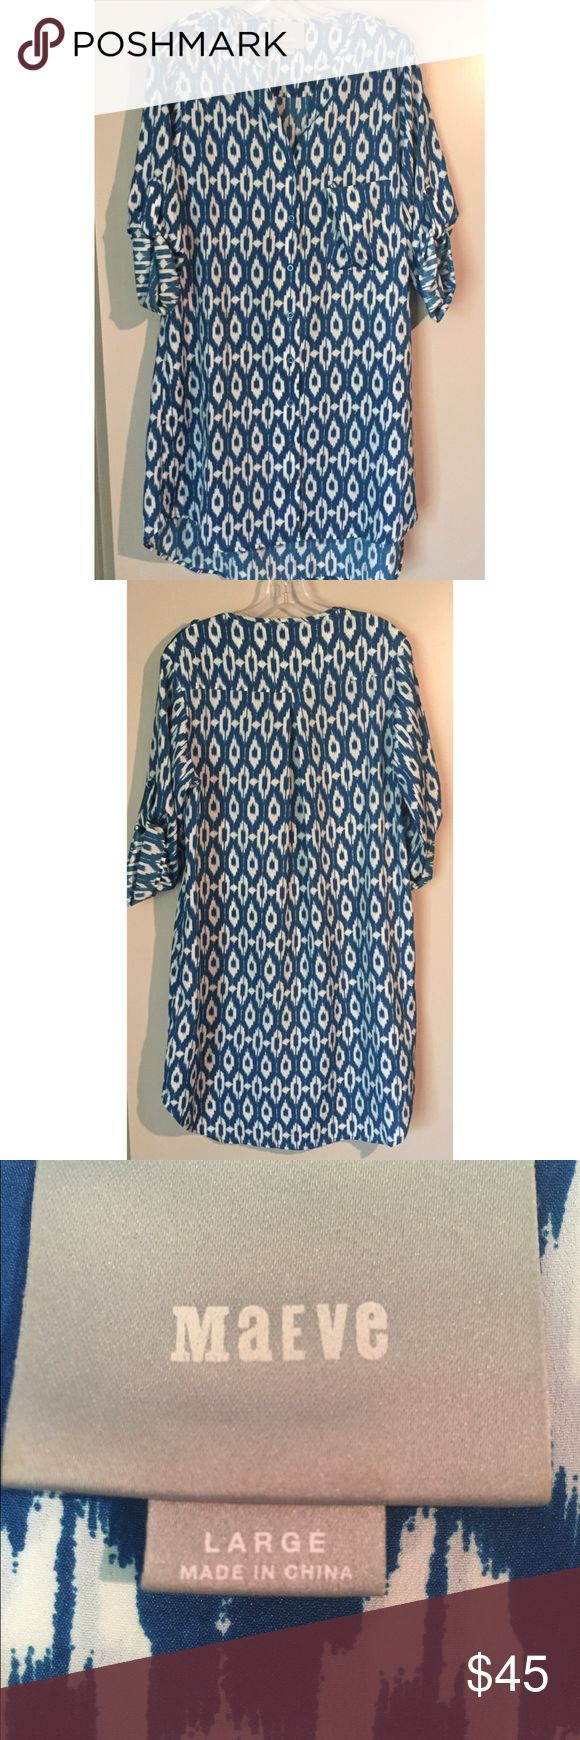 """Anthropologie """"Maeve"""" Shirt Dress Anthropologie """"Maeve"""" shirt dress in beautiful blue and white pattern. Tab sleeves and high/low hem. Anthropologie Dresses"""